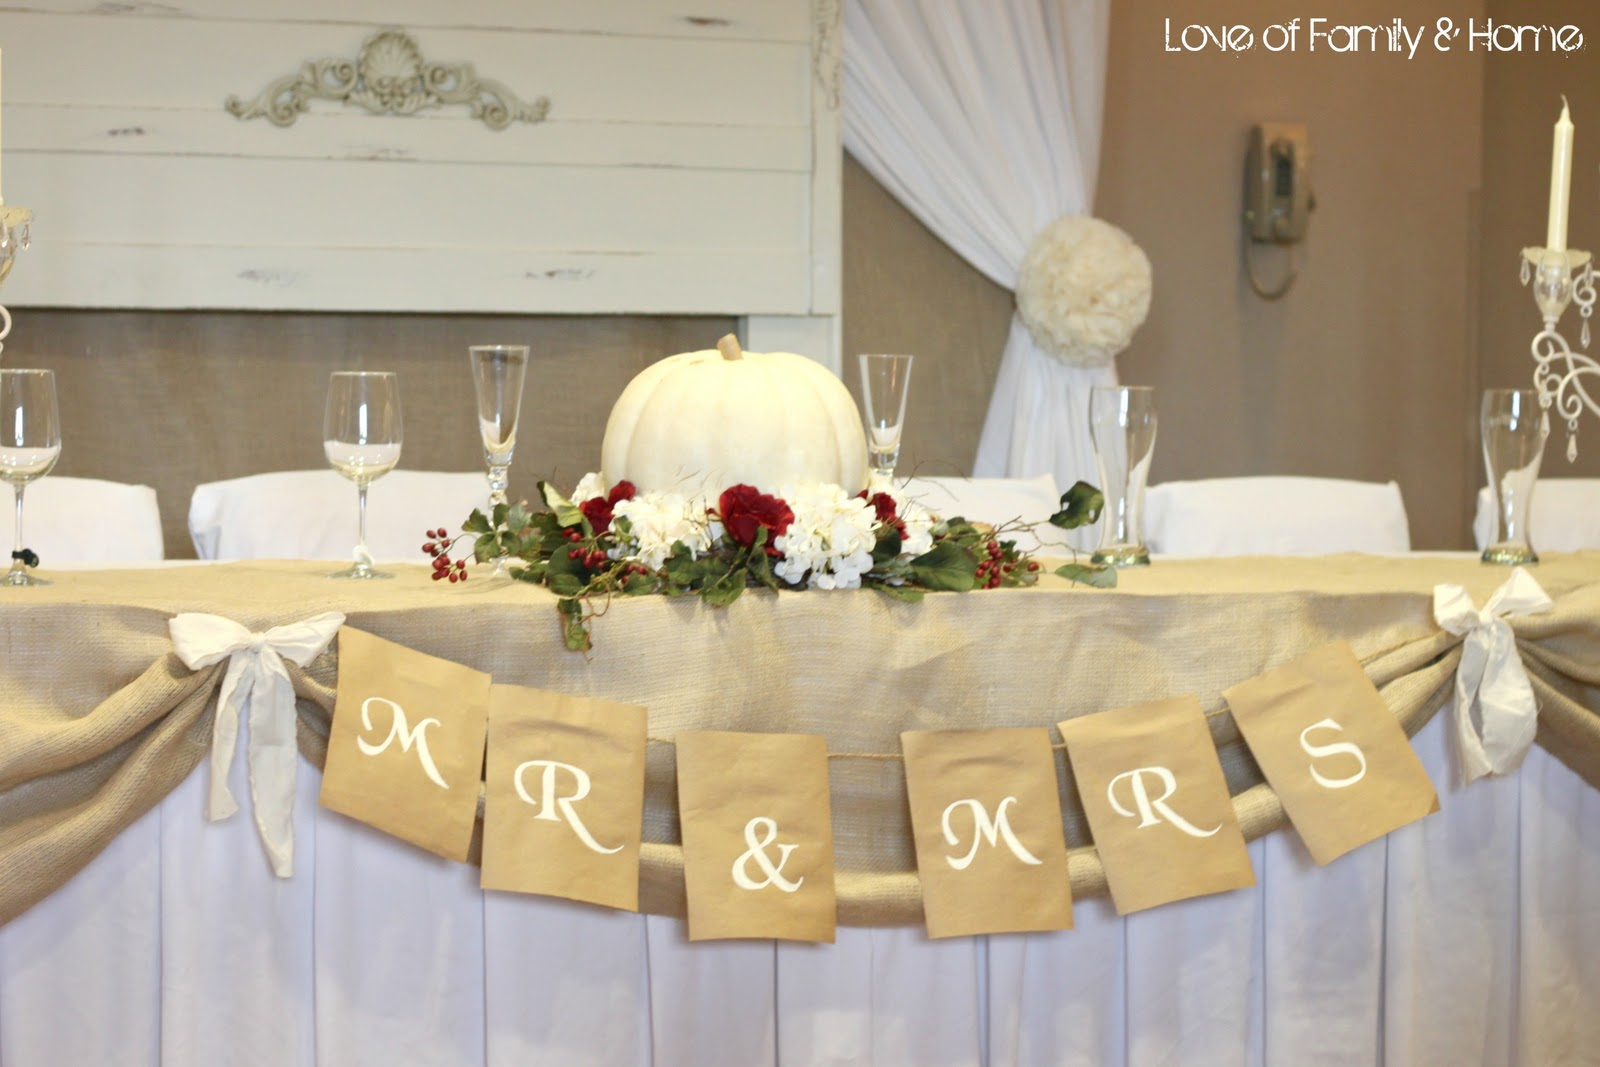 Diy wedding word banners love of family home diy wedding word banners solutioingenieria Gallery